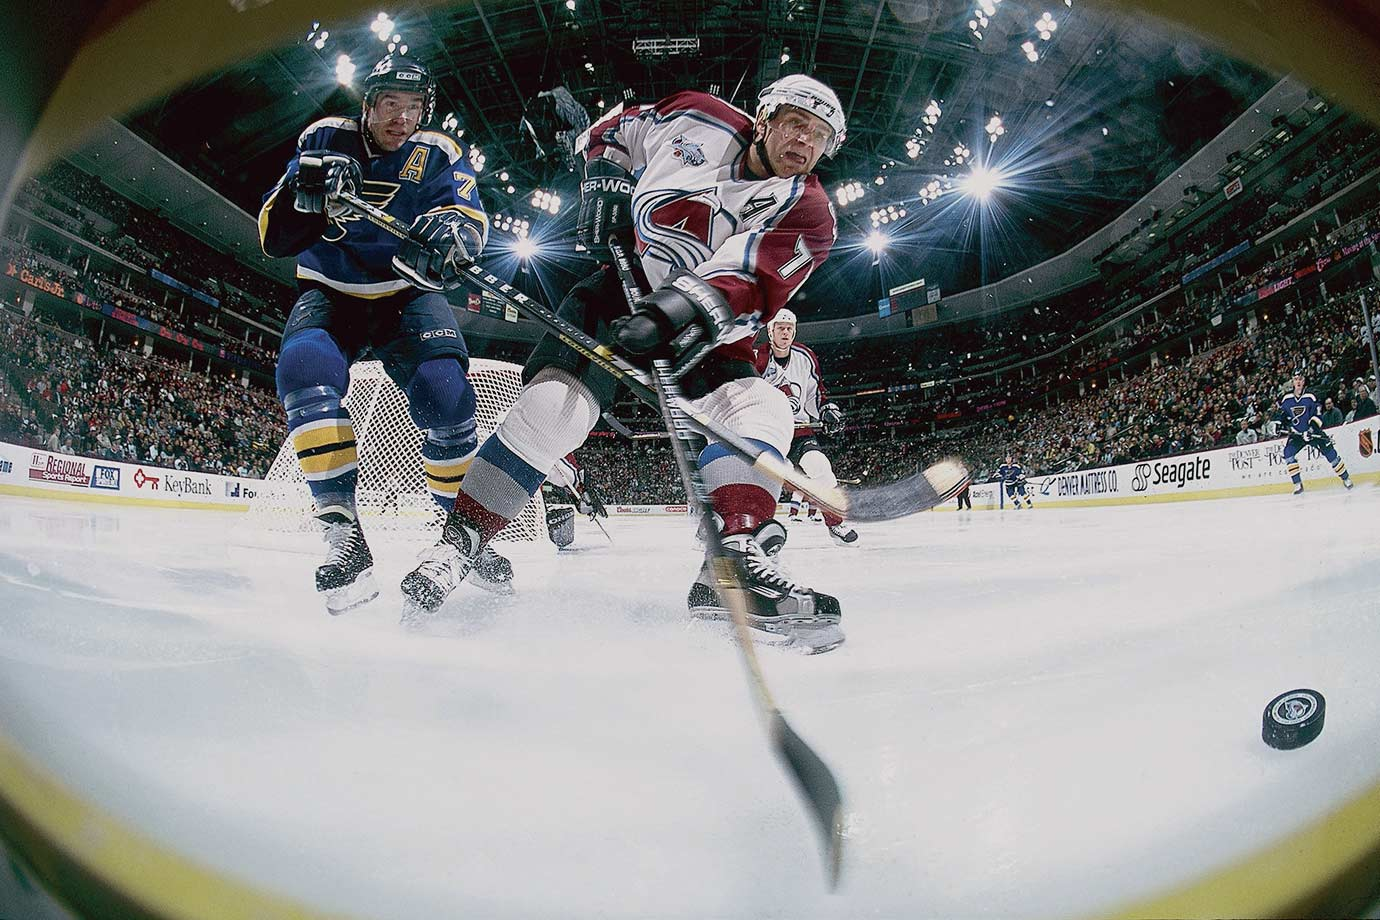 Feb. 10, 2001 — Colorado Avalanche vs. St. Louis Blues